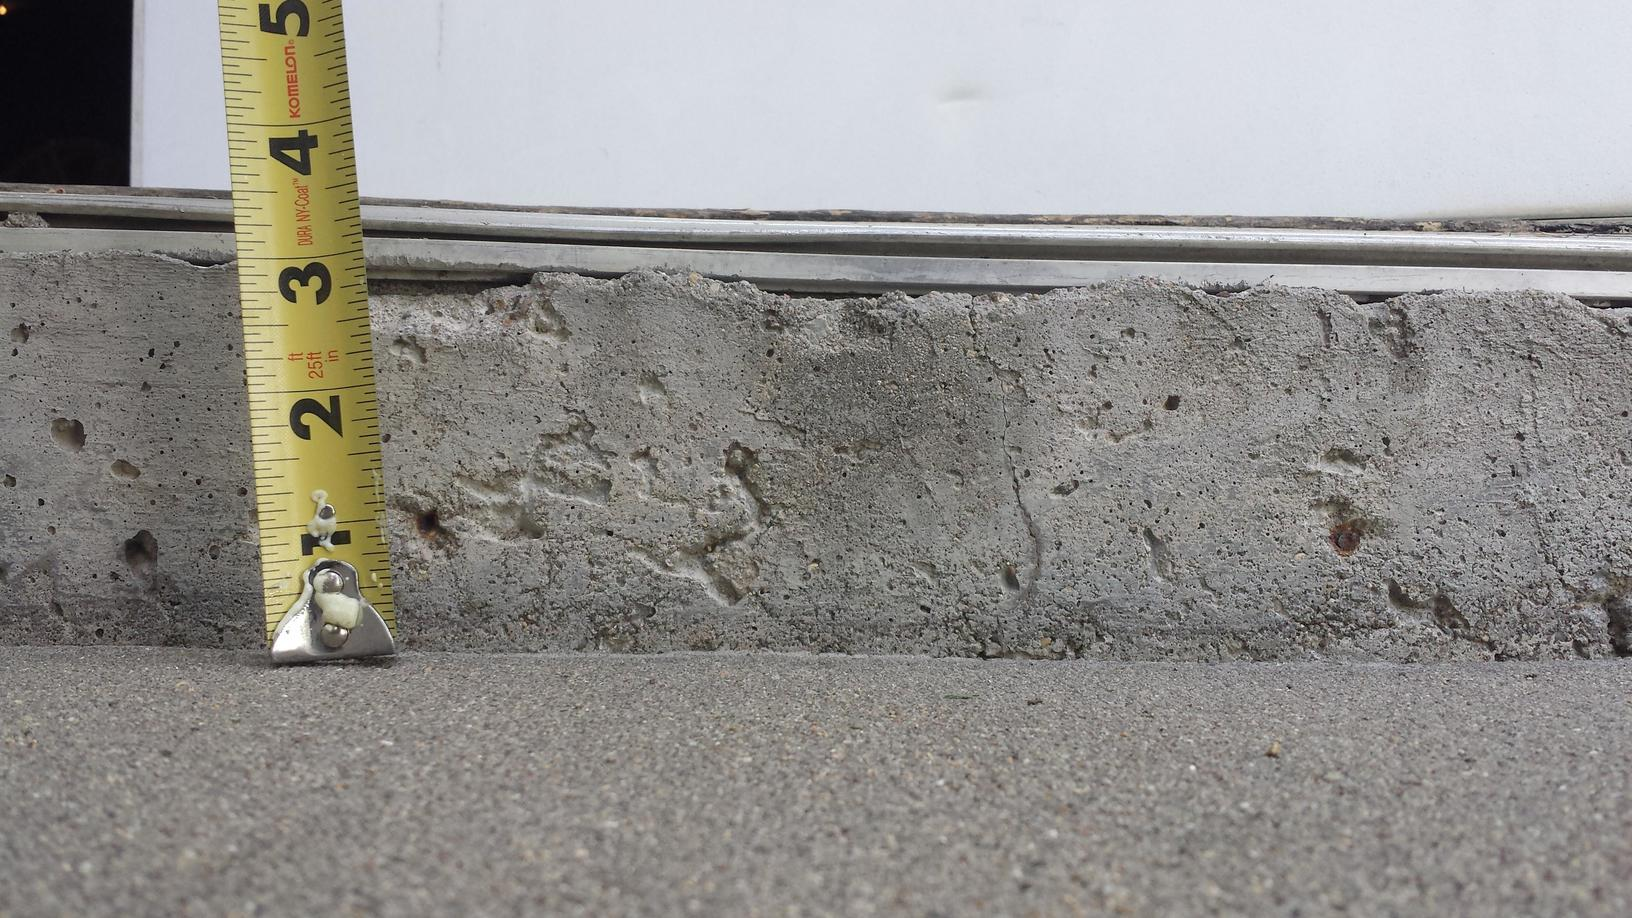 Measuring helps then determine how much PolyLevel foam they need.